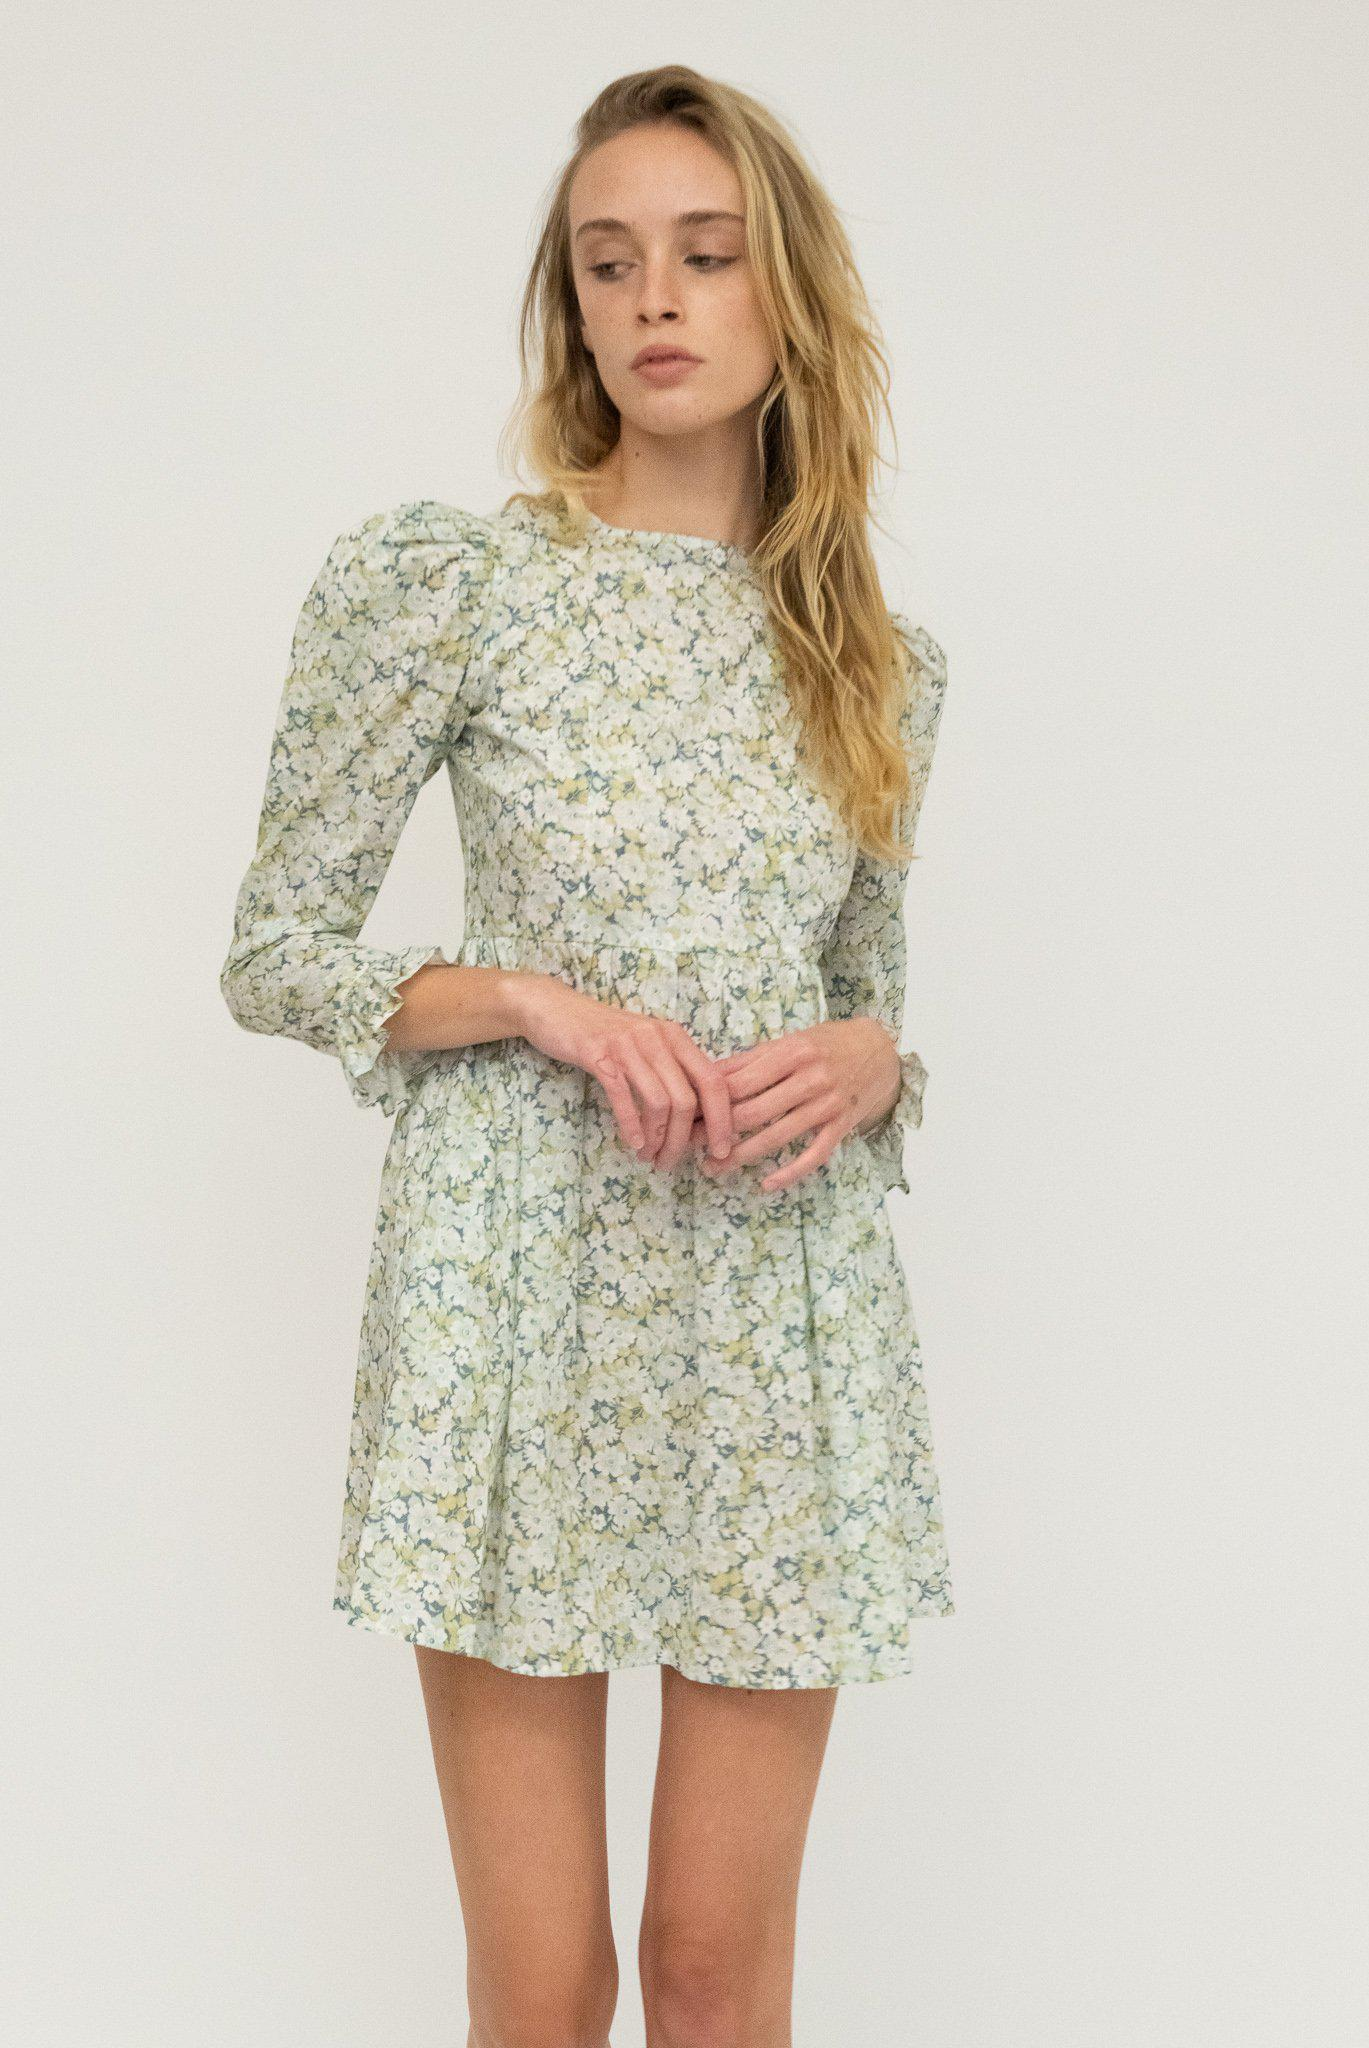 Minidress in Blue and Green Floral